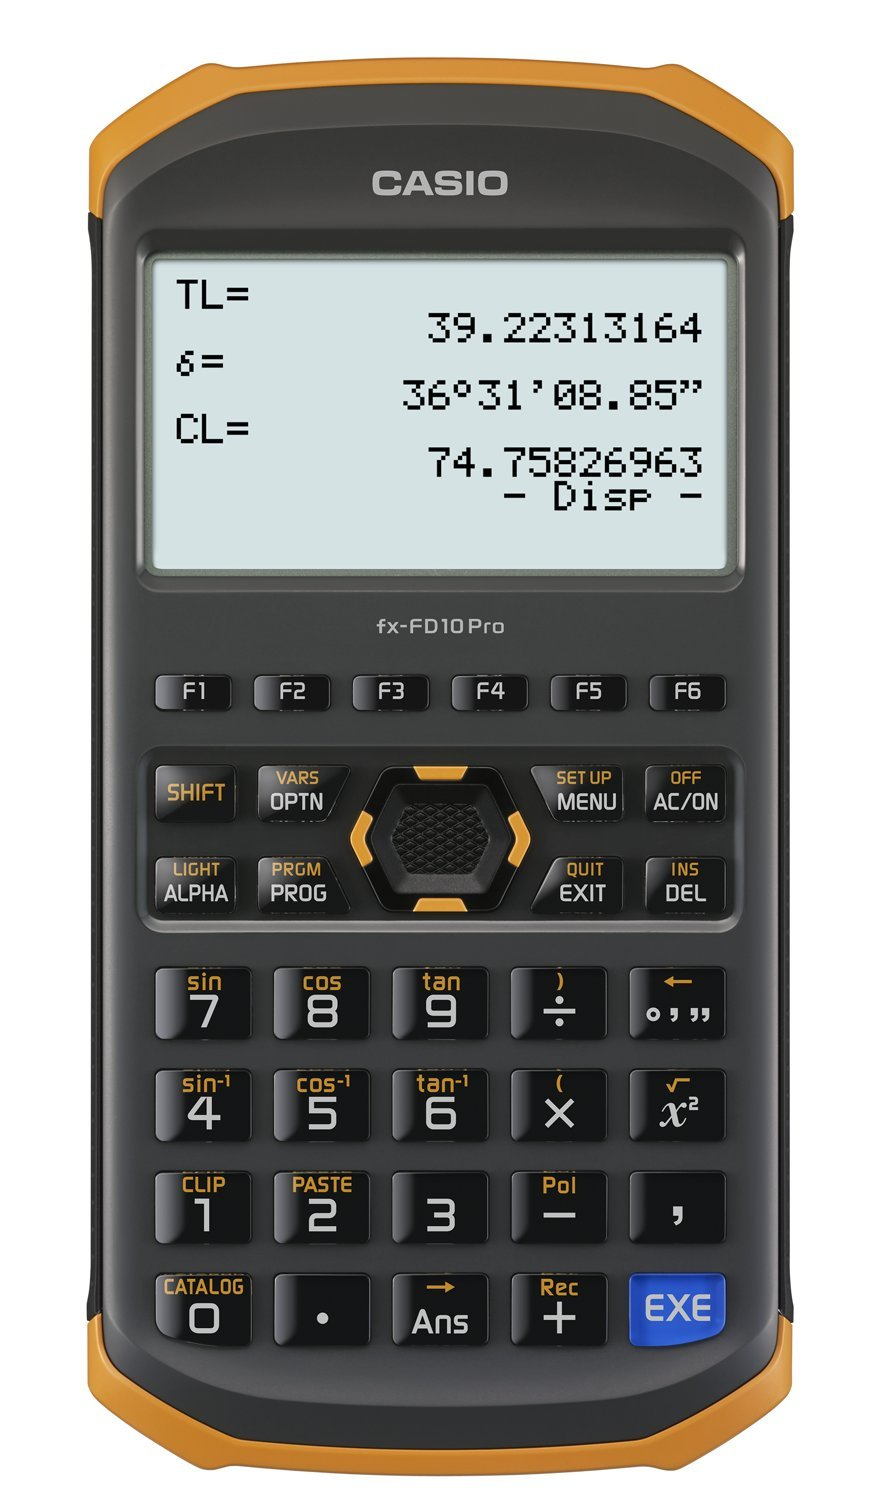 Casio civil engineering surveying specialized calculator fx-FD10 Pro by Casio